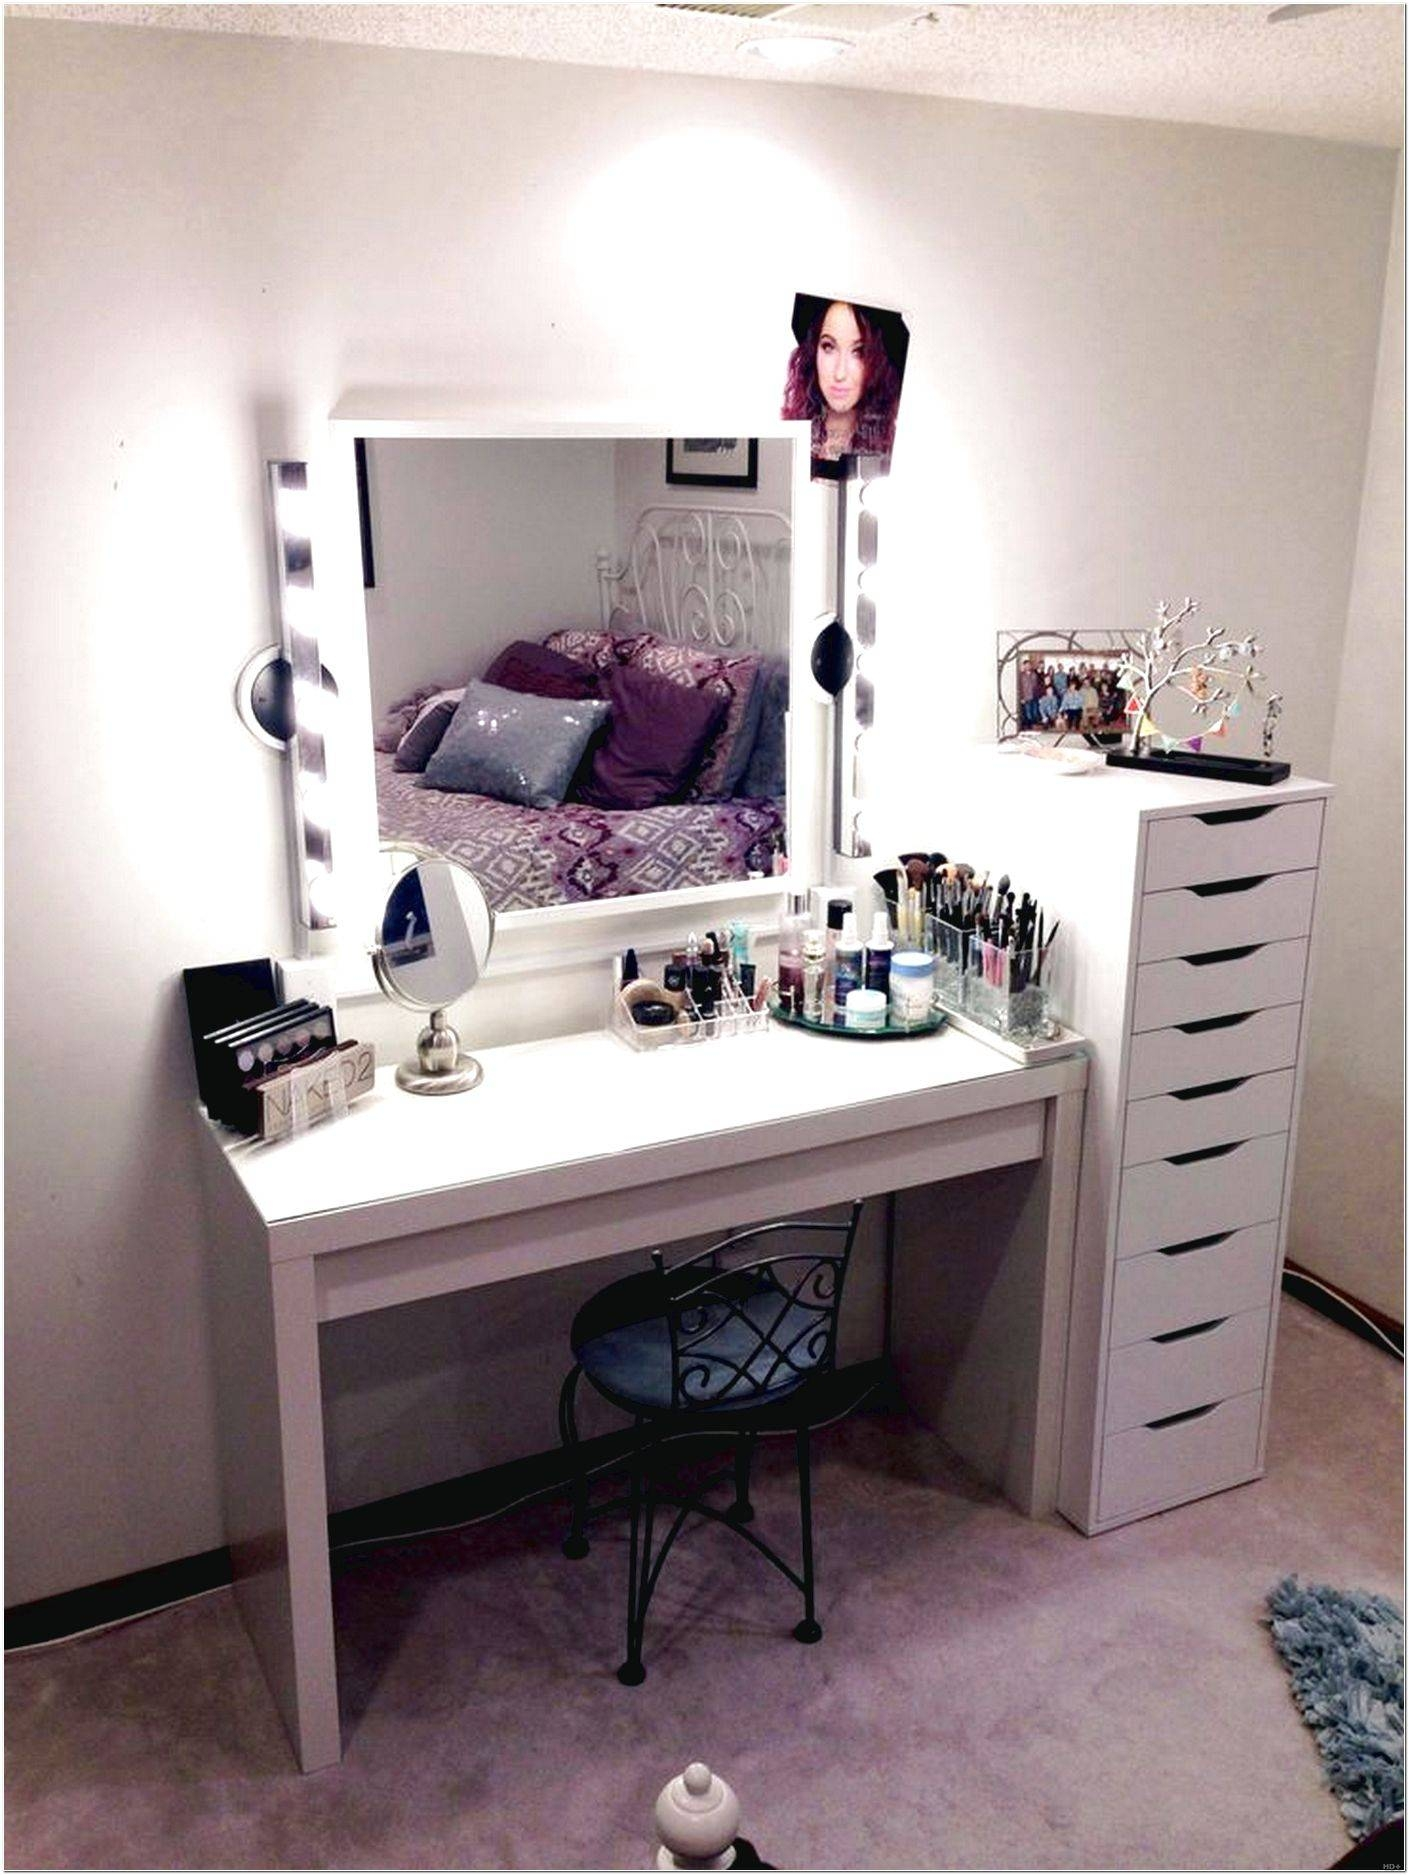 Mirror On Stand For Dressing Table Design Ideas – Interior Design With Regard To Mirrors On Stand For Dressing Table (View 3 of 15)